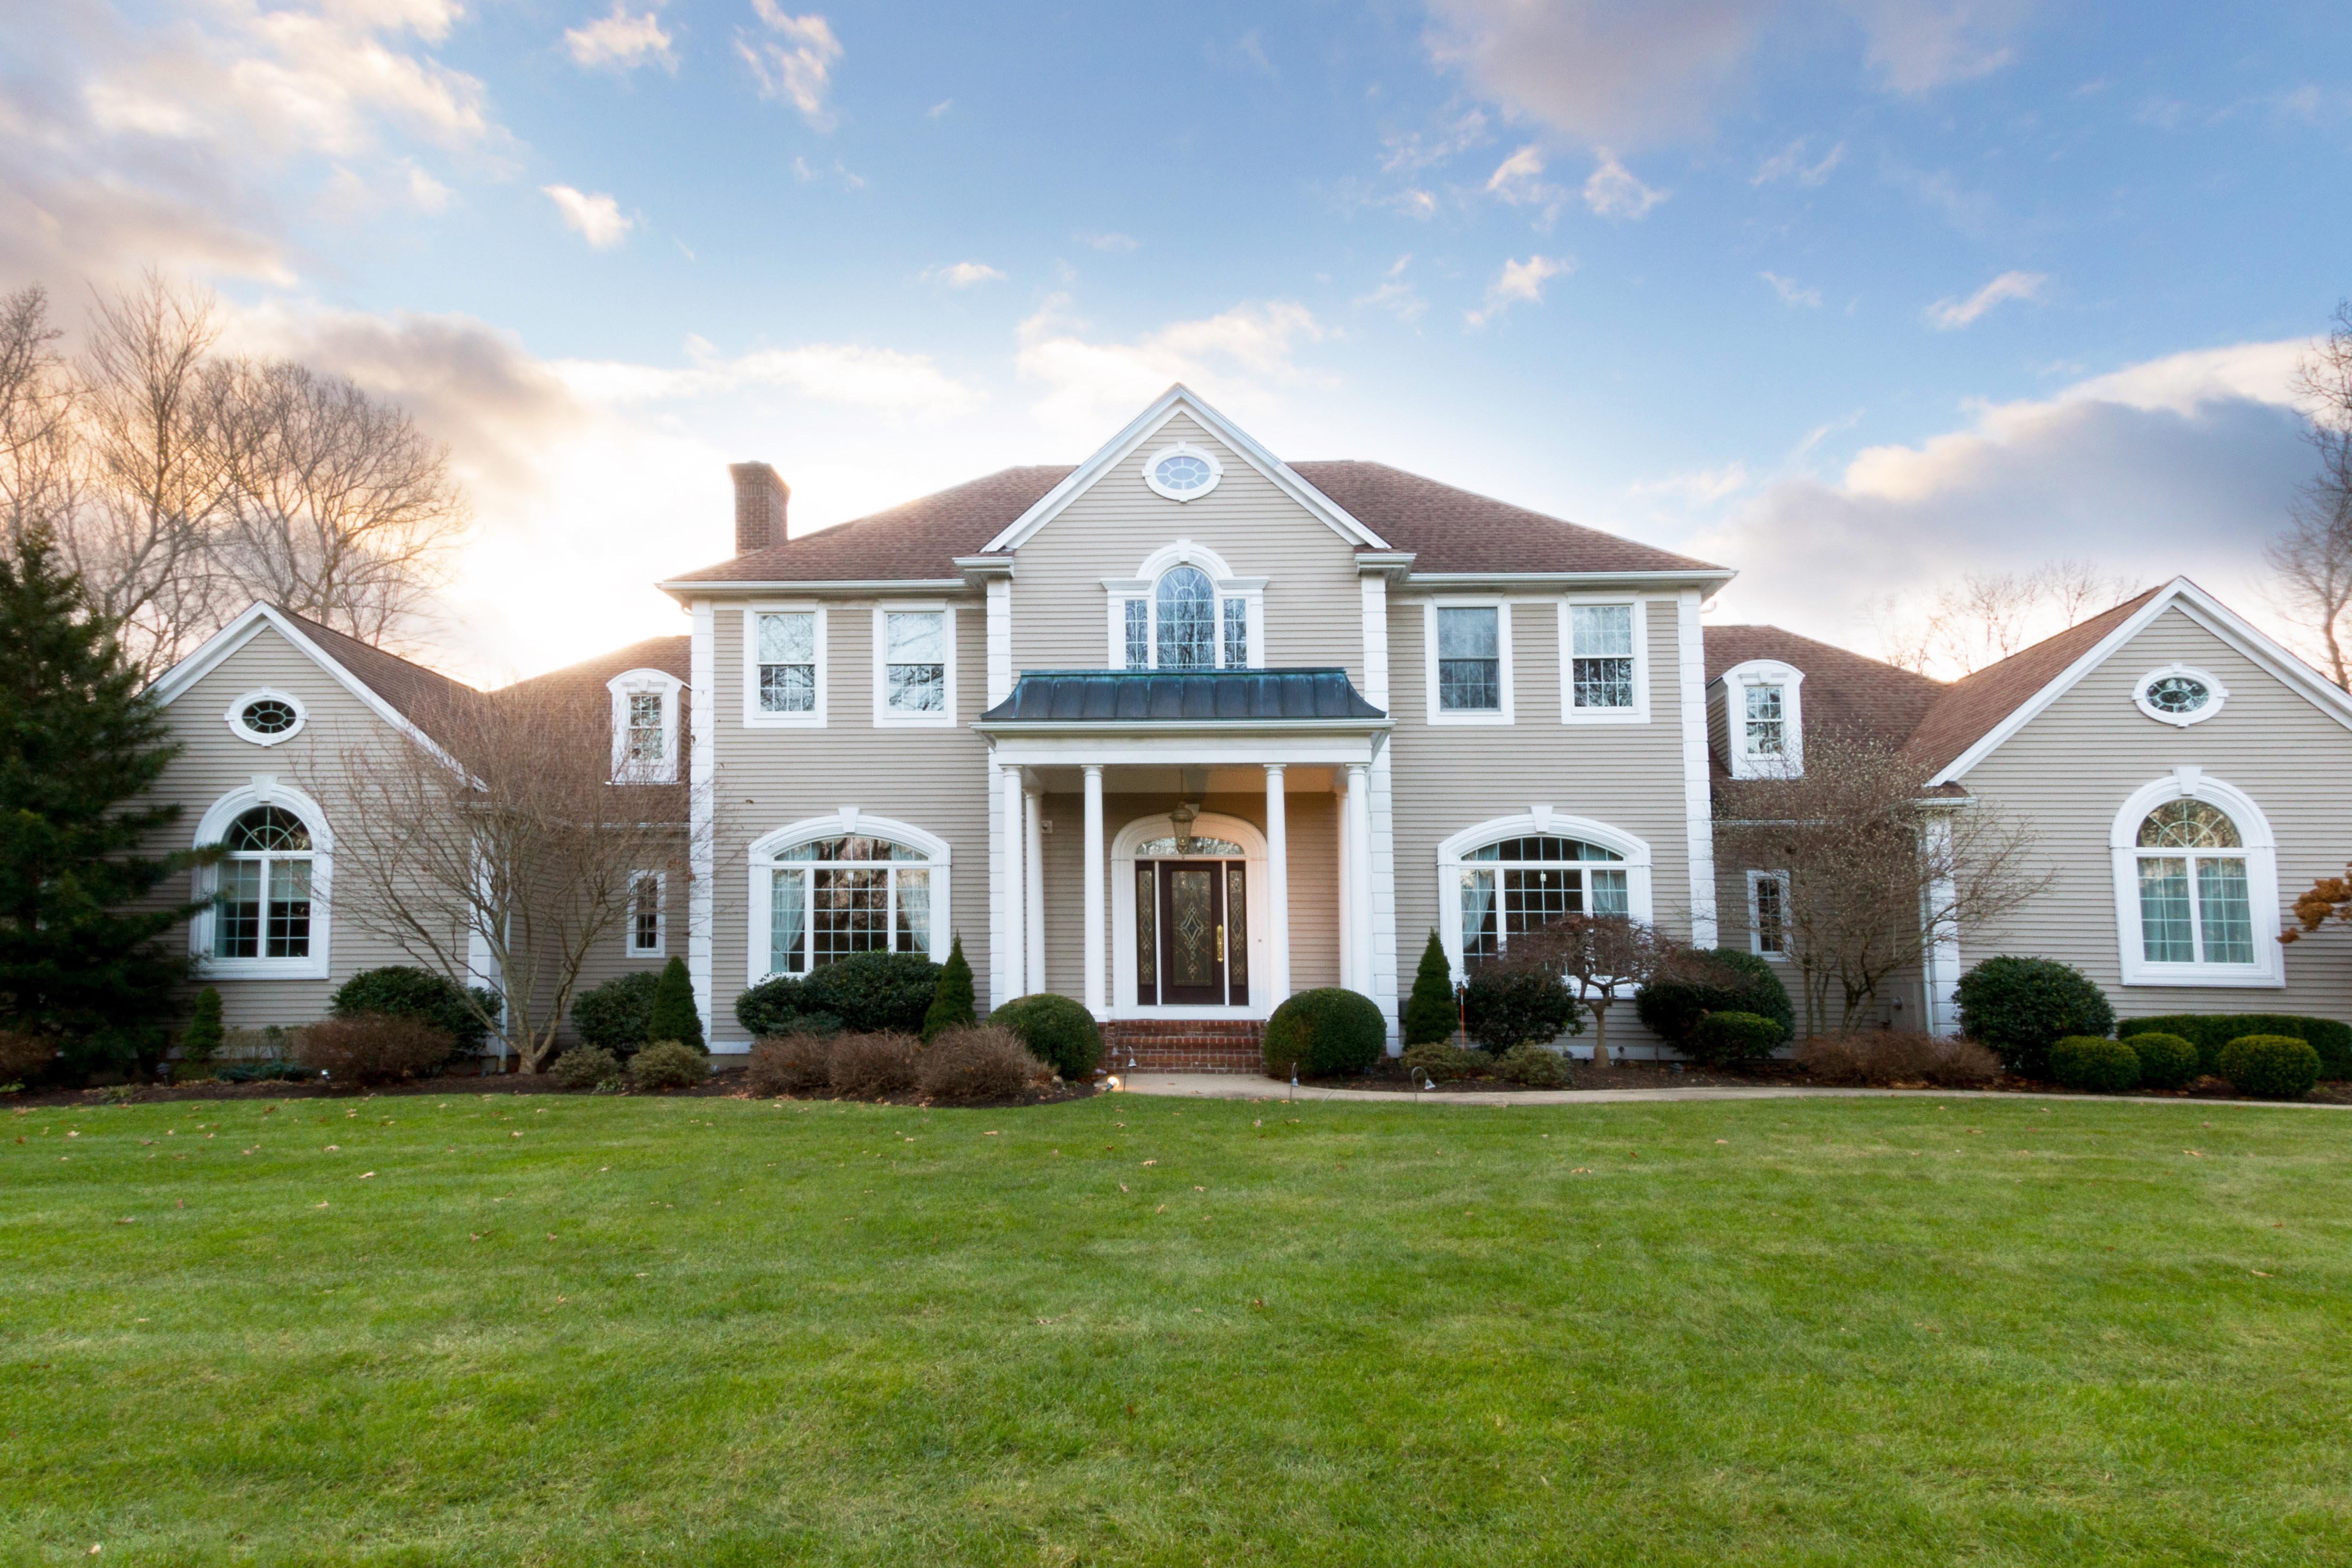 QUAIL HOLLOW COLONIAL SELLS FOR $1.335M, MARKING THE HIGHEST  NON-WATER AMENITY SALE IN NORTH KINGSTOWN THIS YEAR*